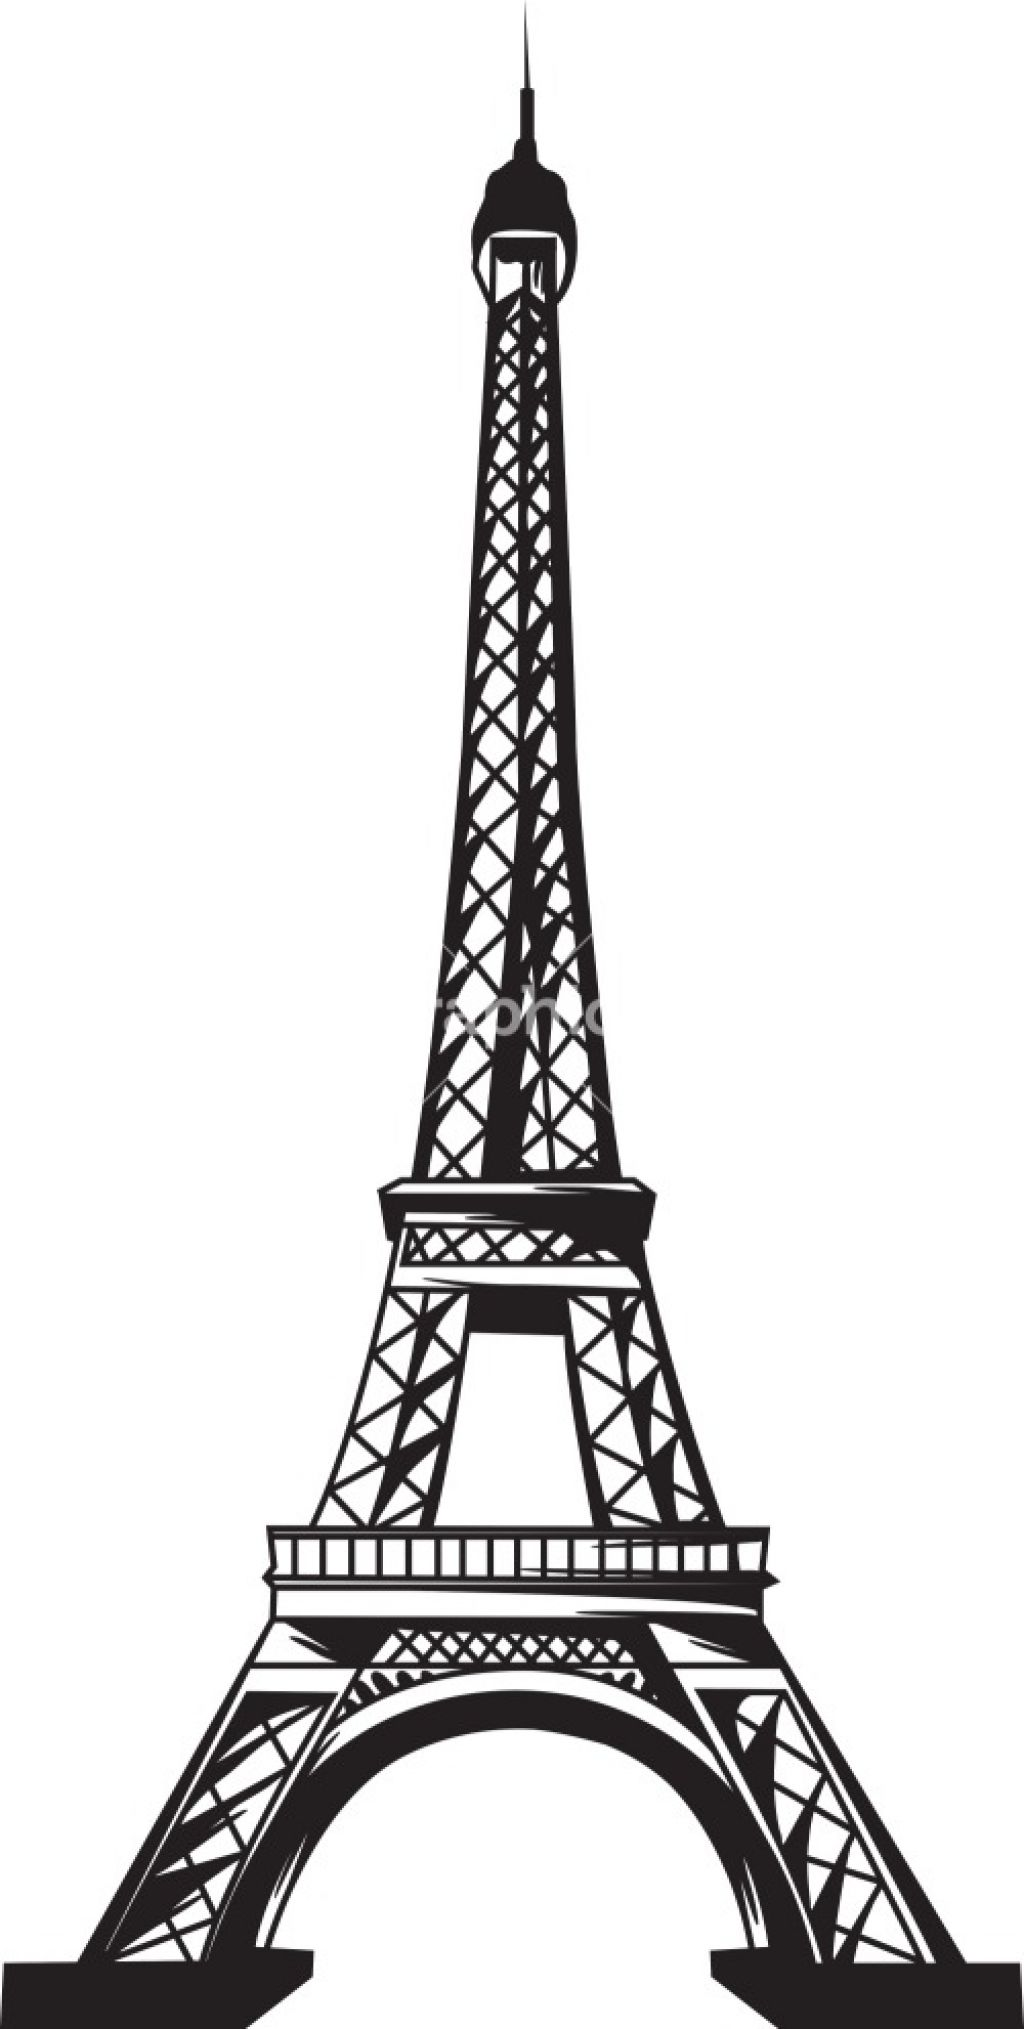 La Tour Eiffel Eiffel Tower Clip Art At Vector Clip Image.